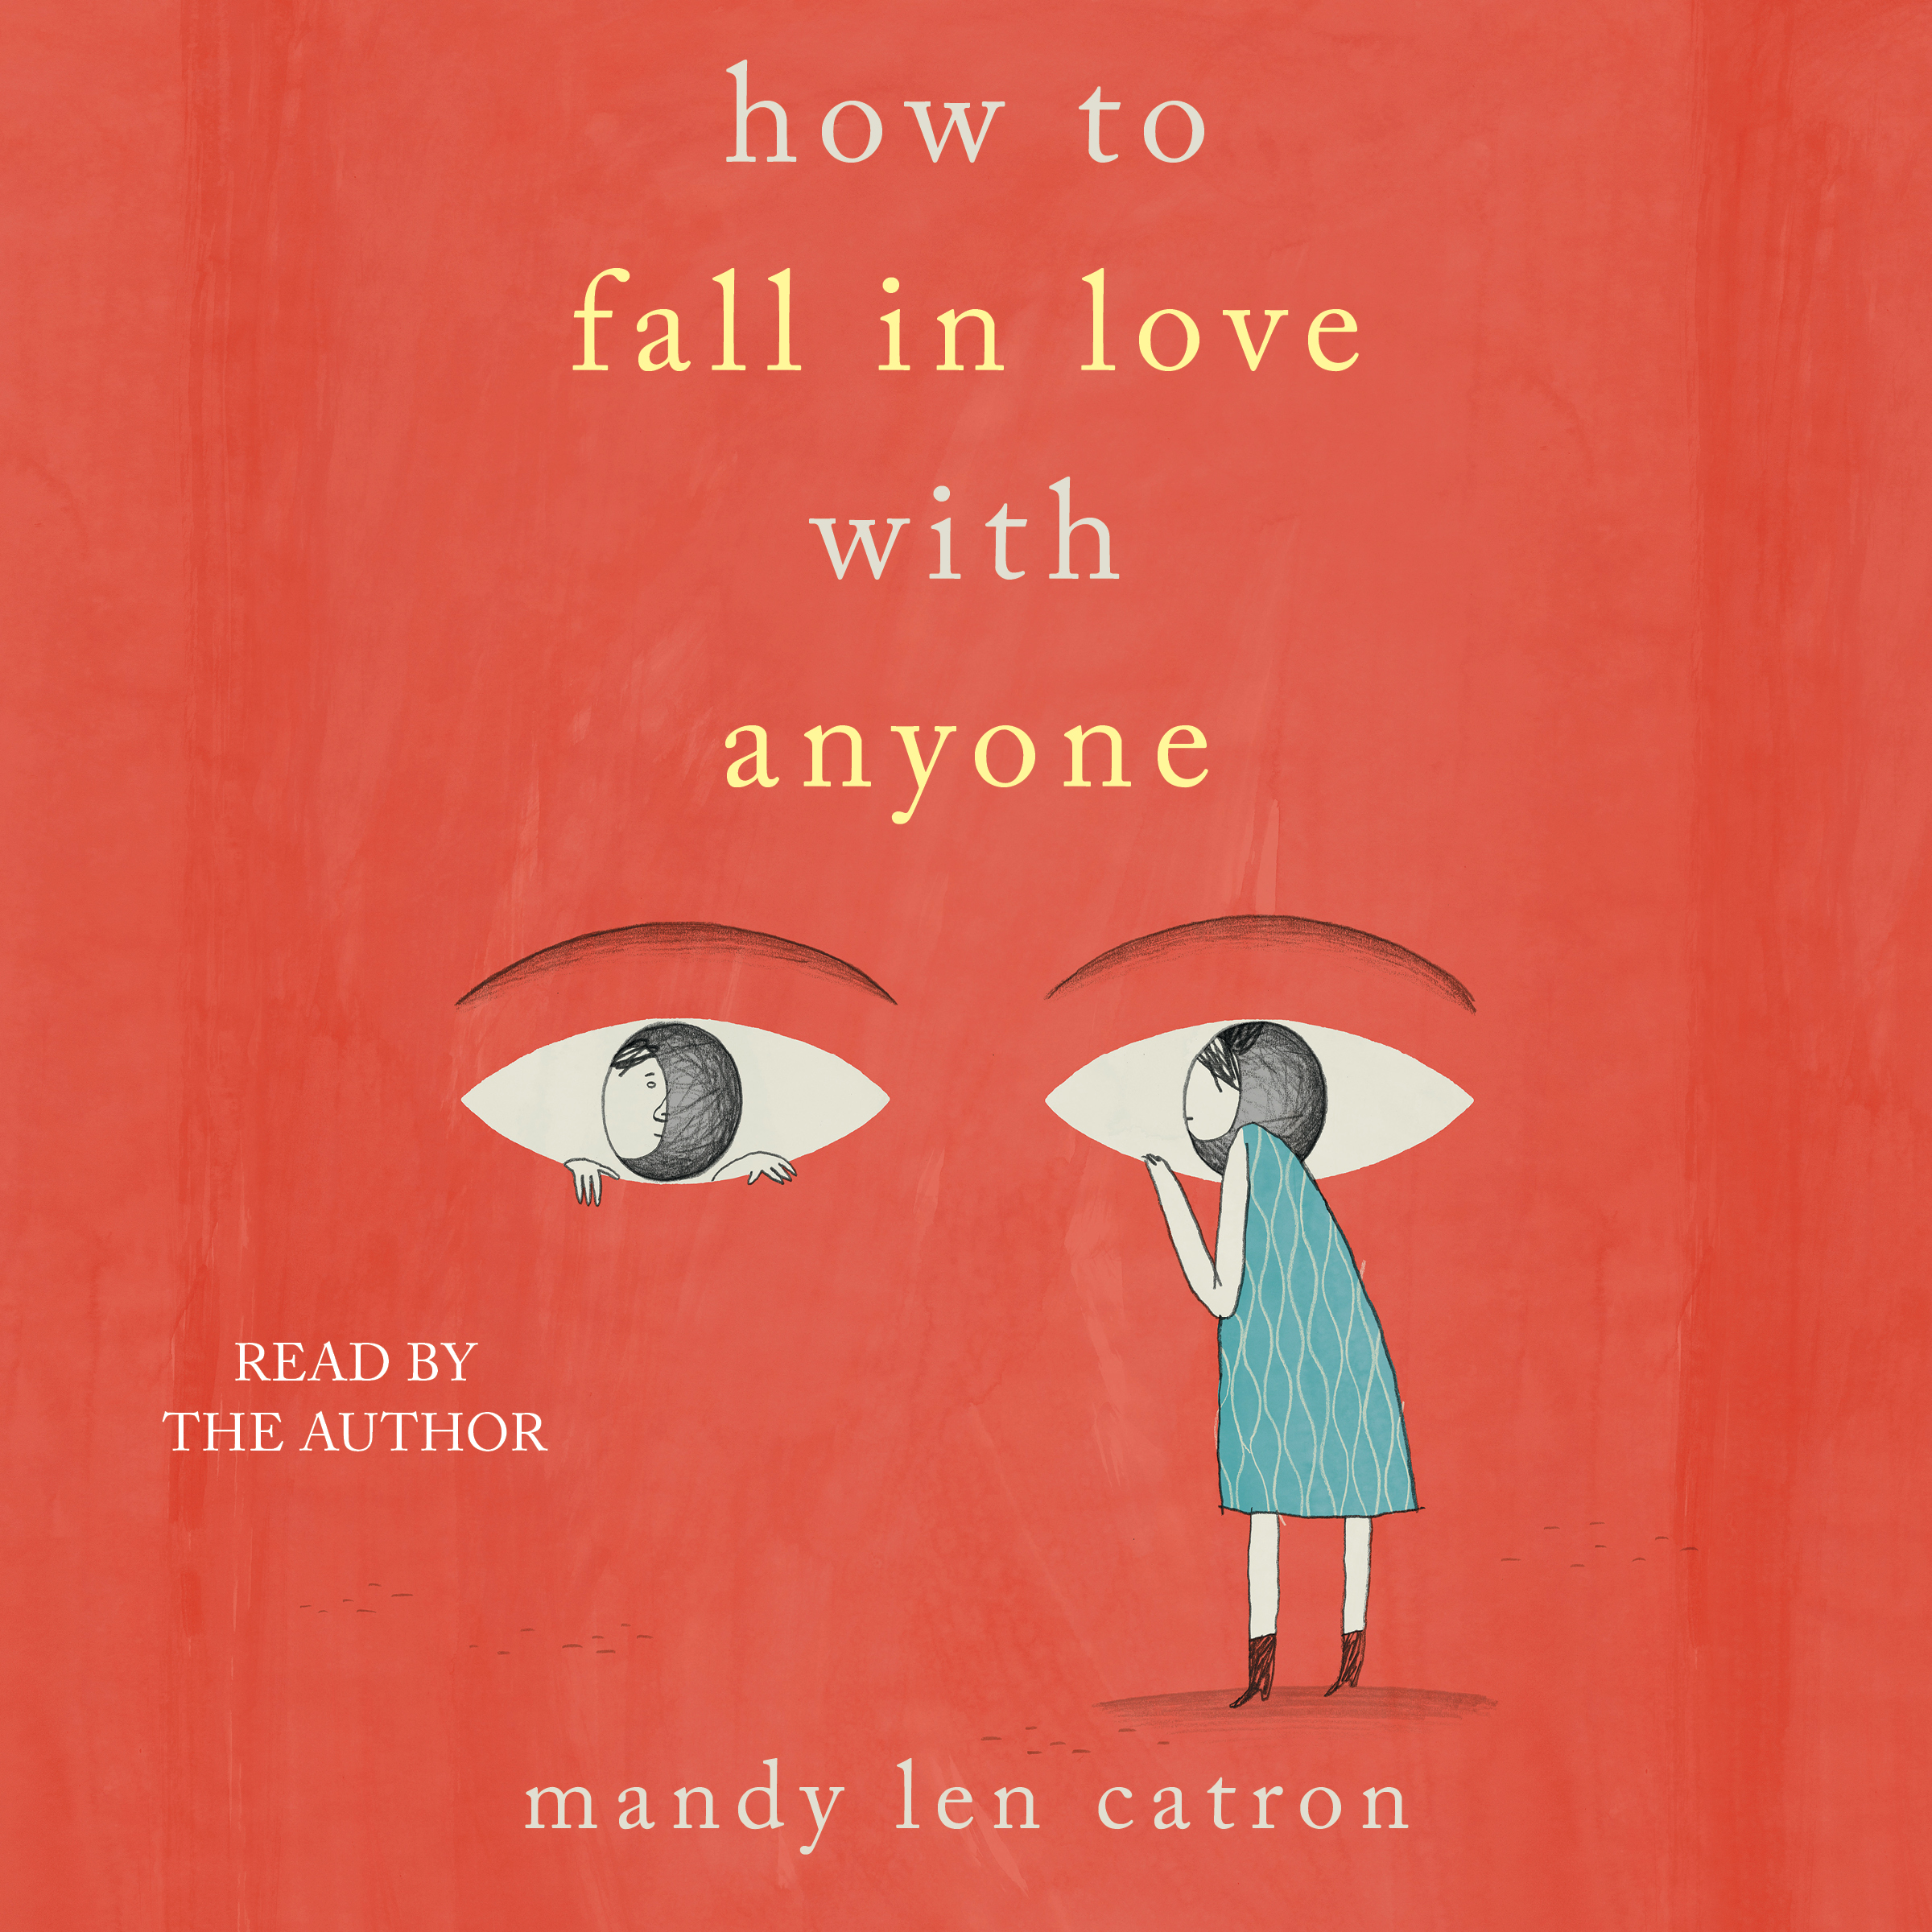 How to fall in love with anyone 9781508239277 hr